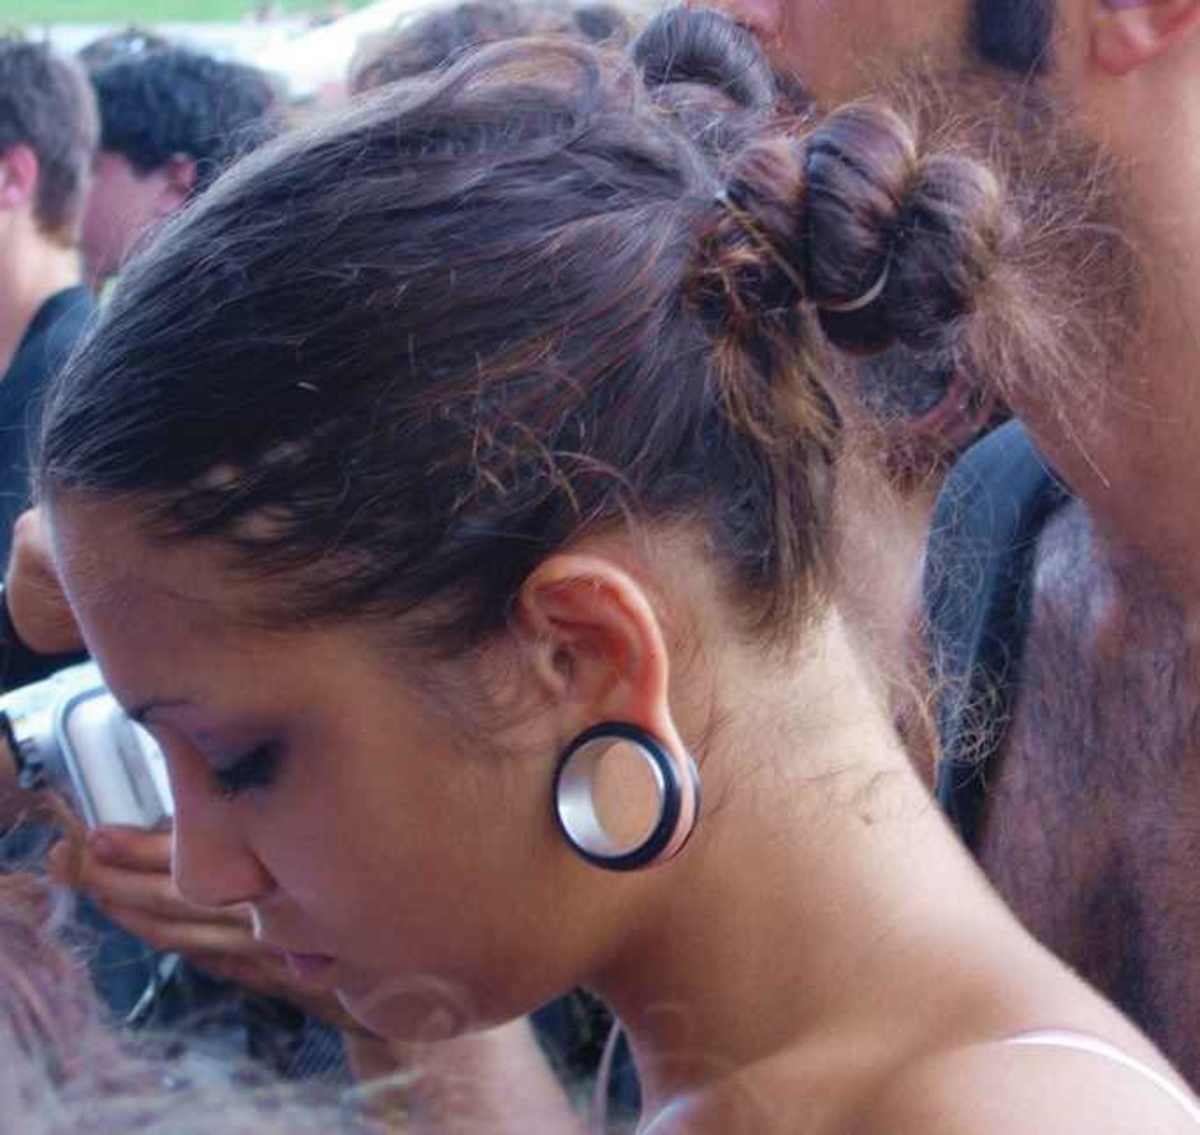 Stretched earlobes look cool whether you're a man or a woman.